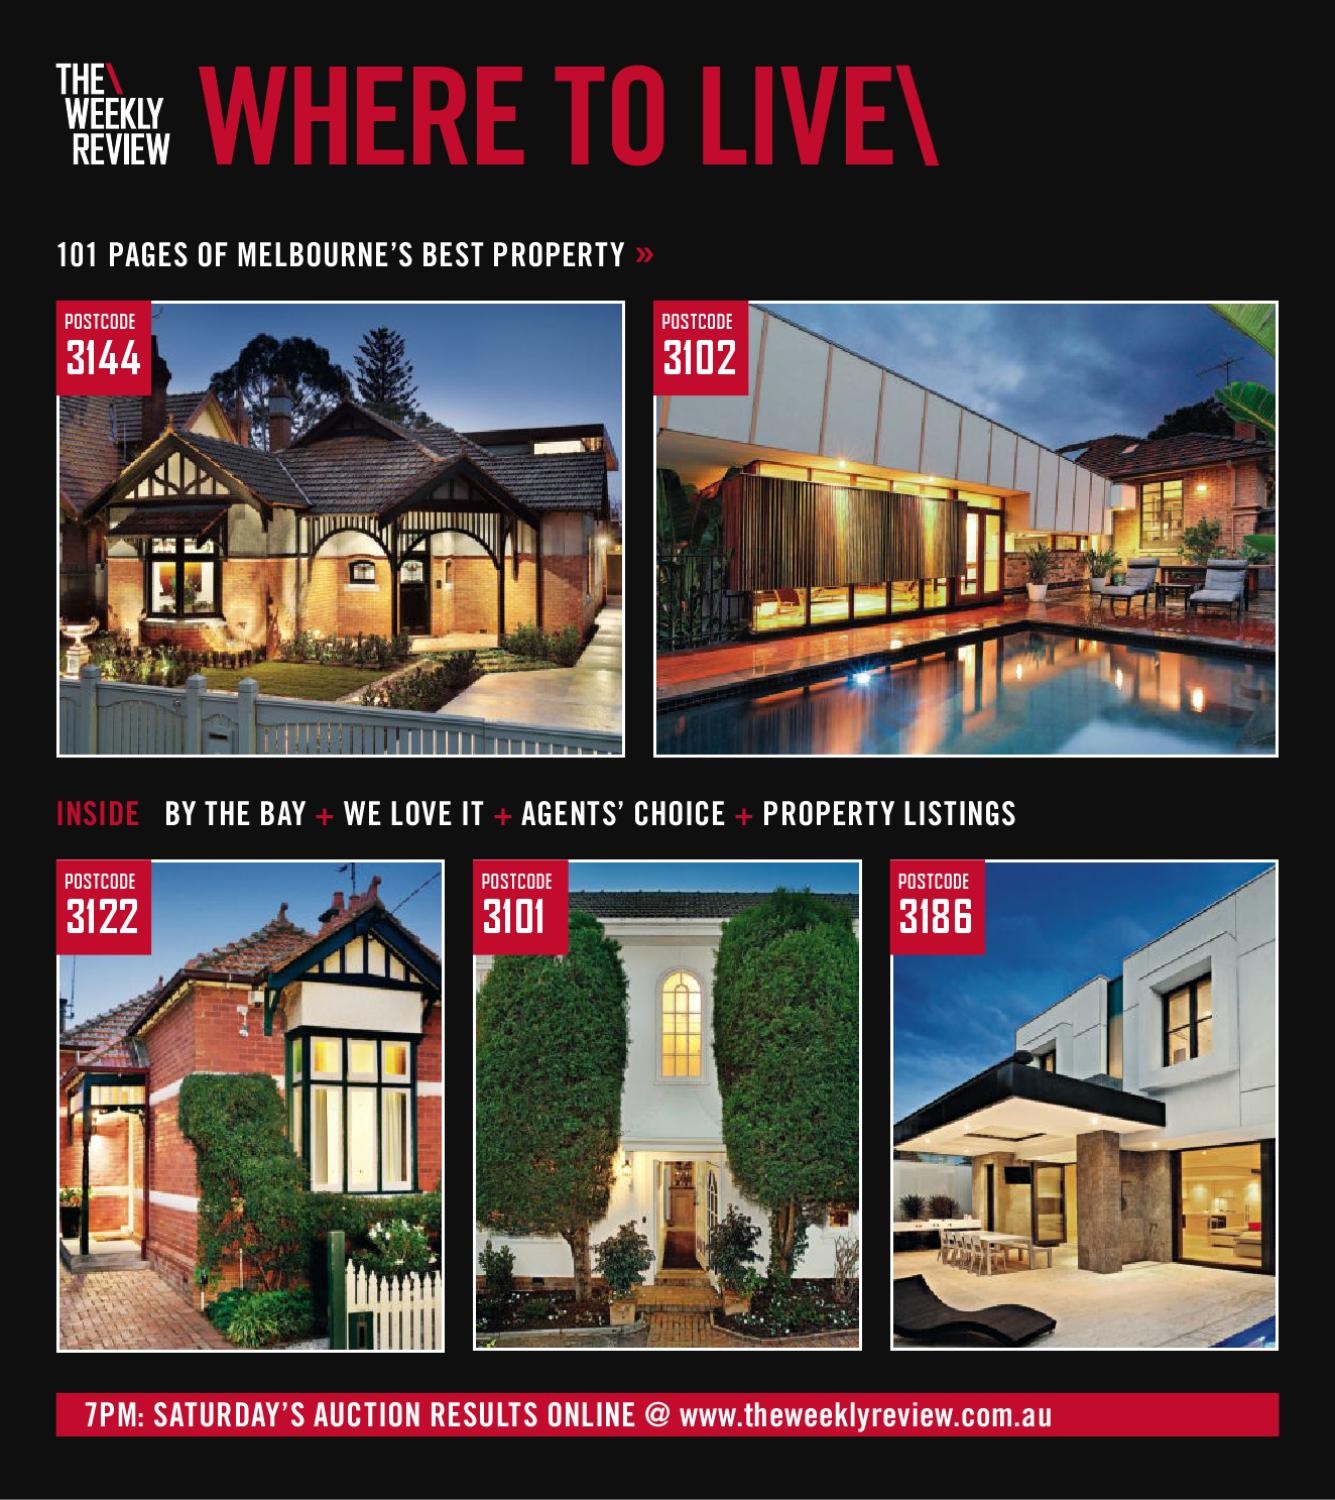 Cucina A Gas 45x50 Twr Stonington 20100714 Realestate By The Weekly Review Issuu